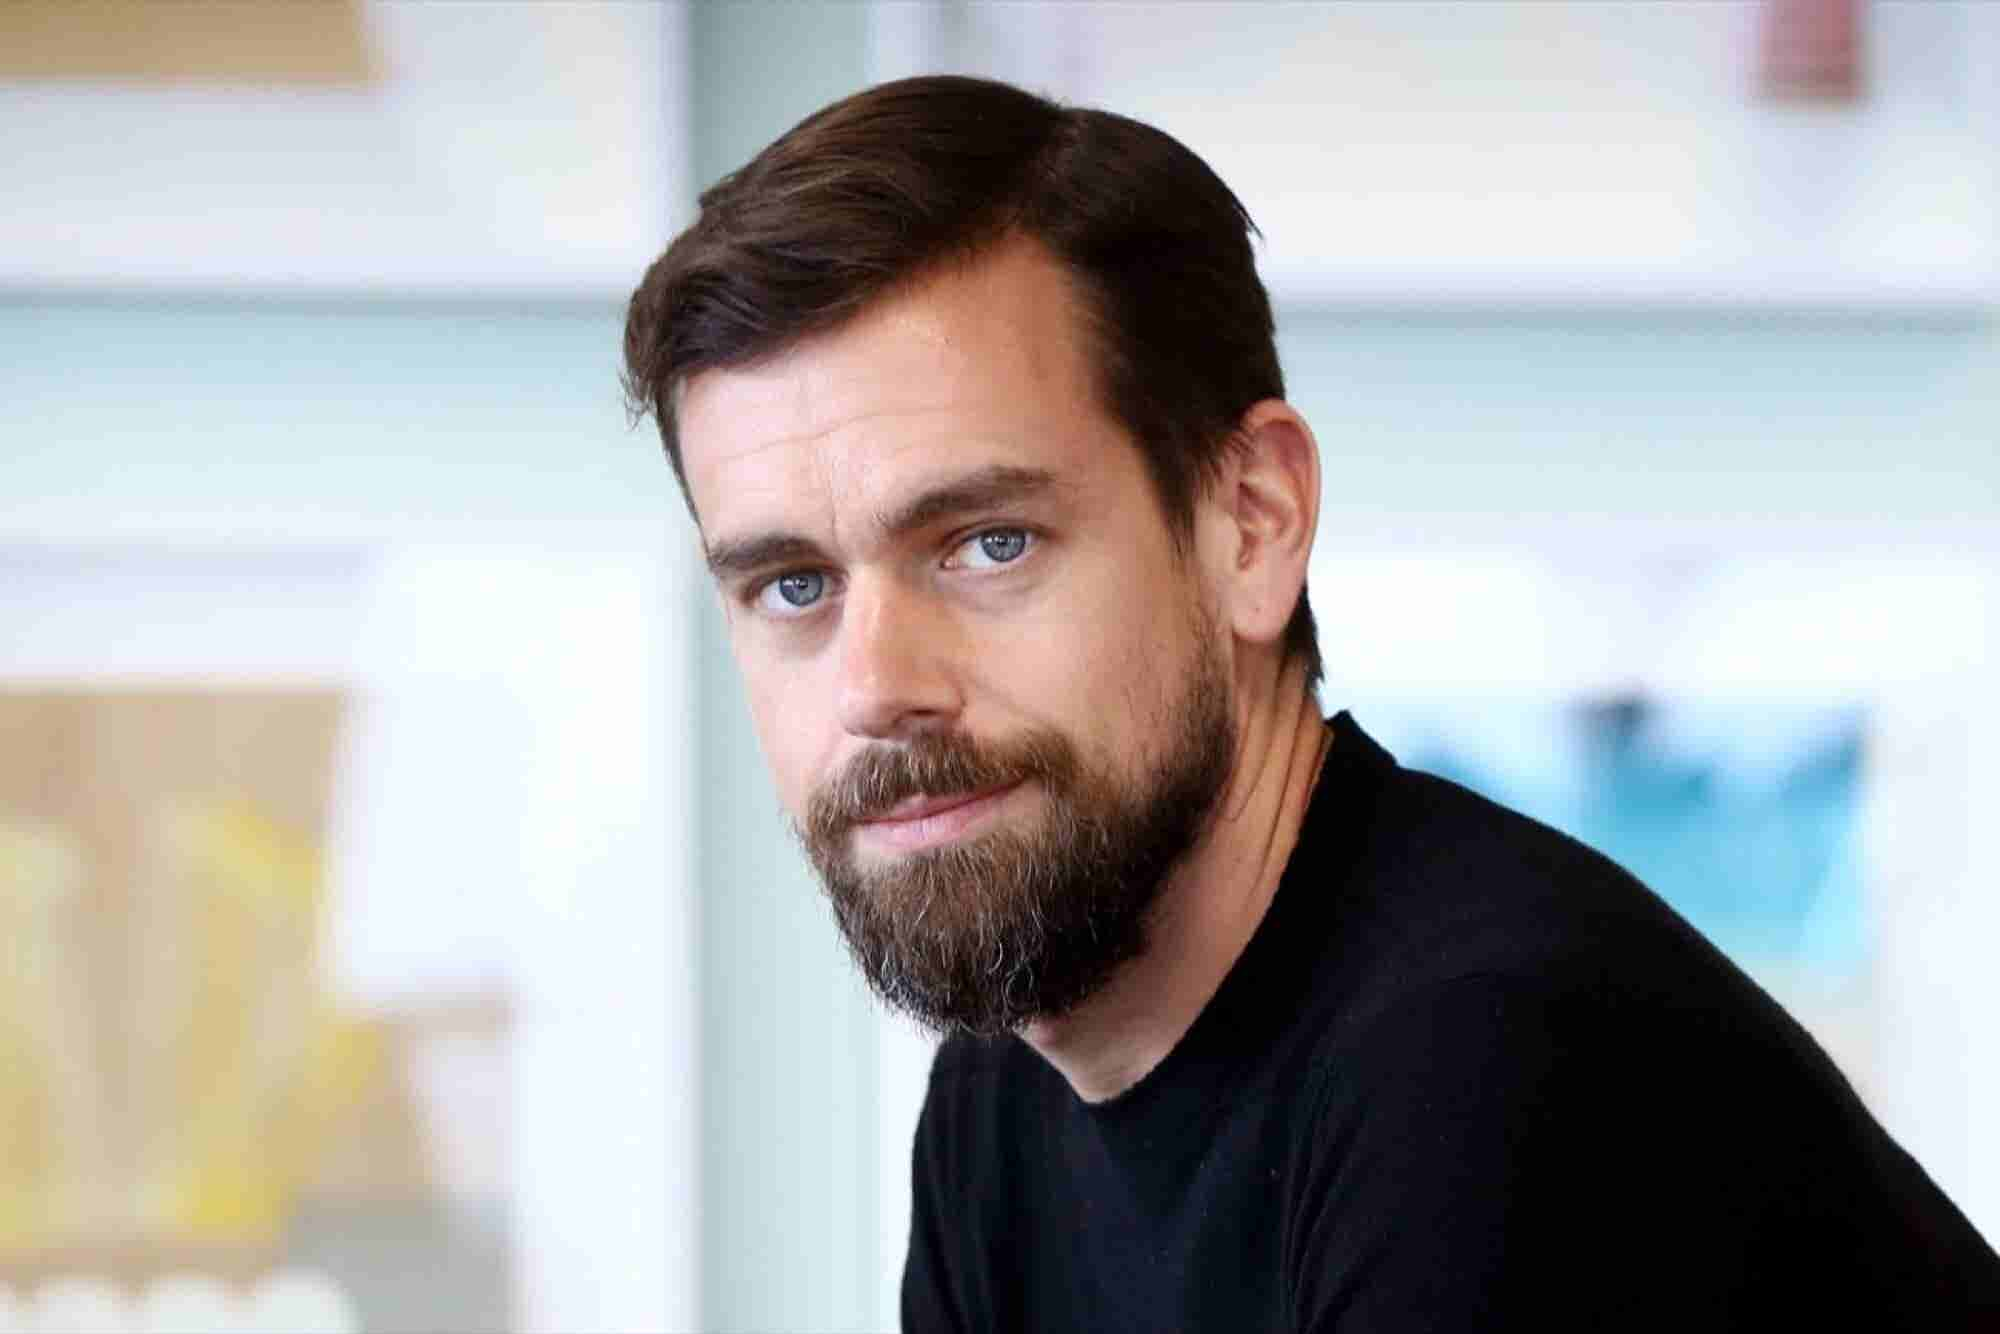 8 Jack Dorsey Quotes That Will Inspire You in Under 140 Characters